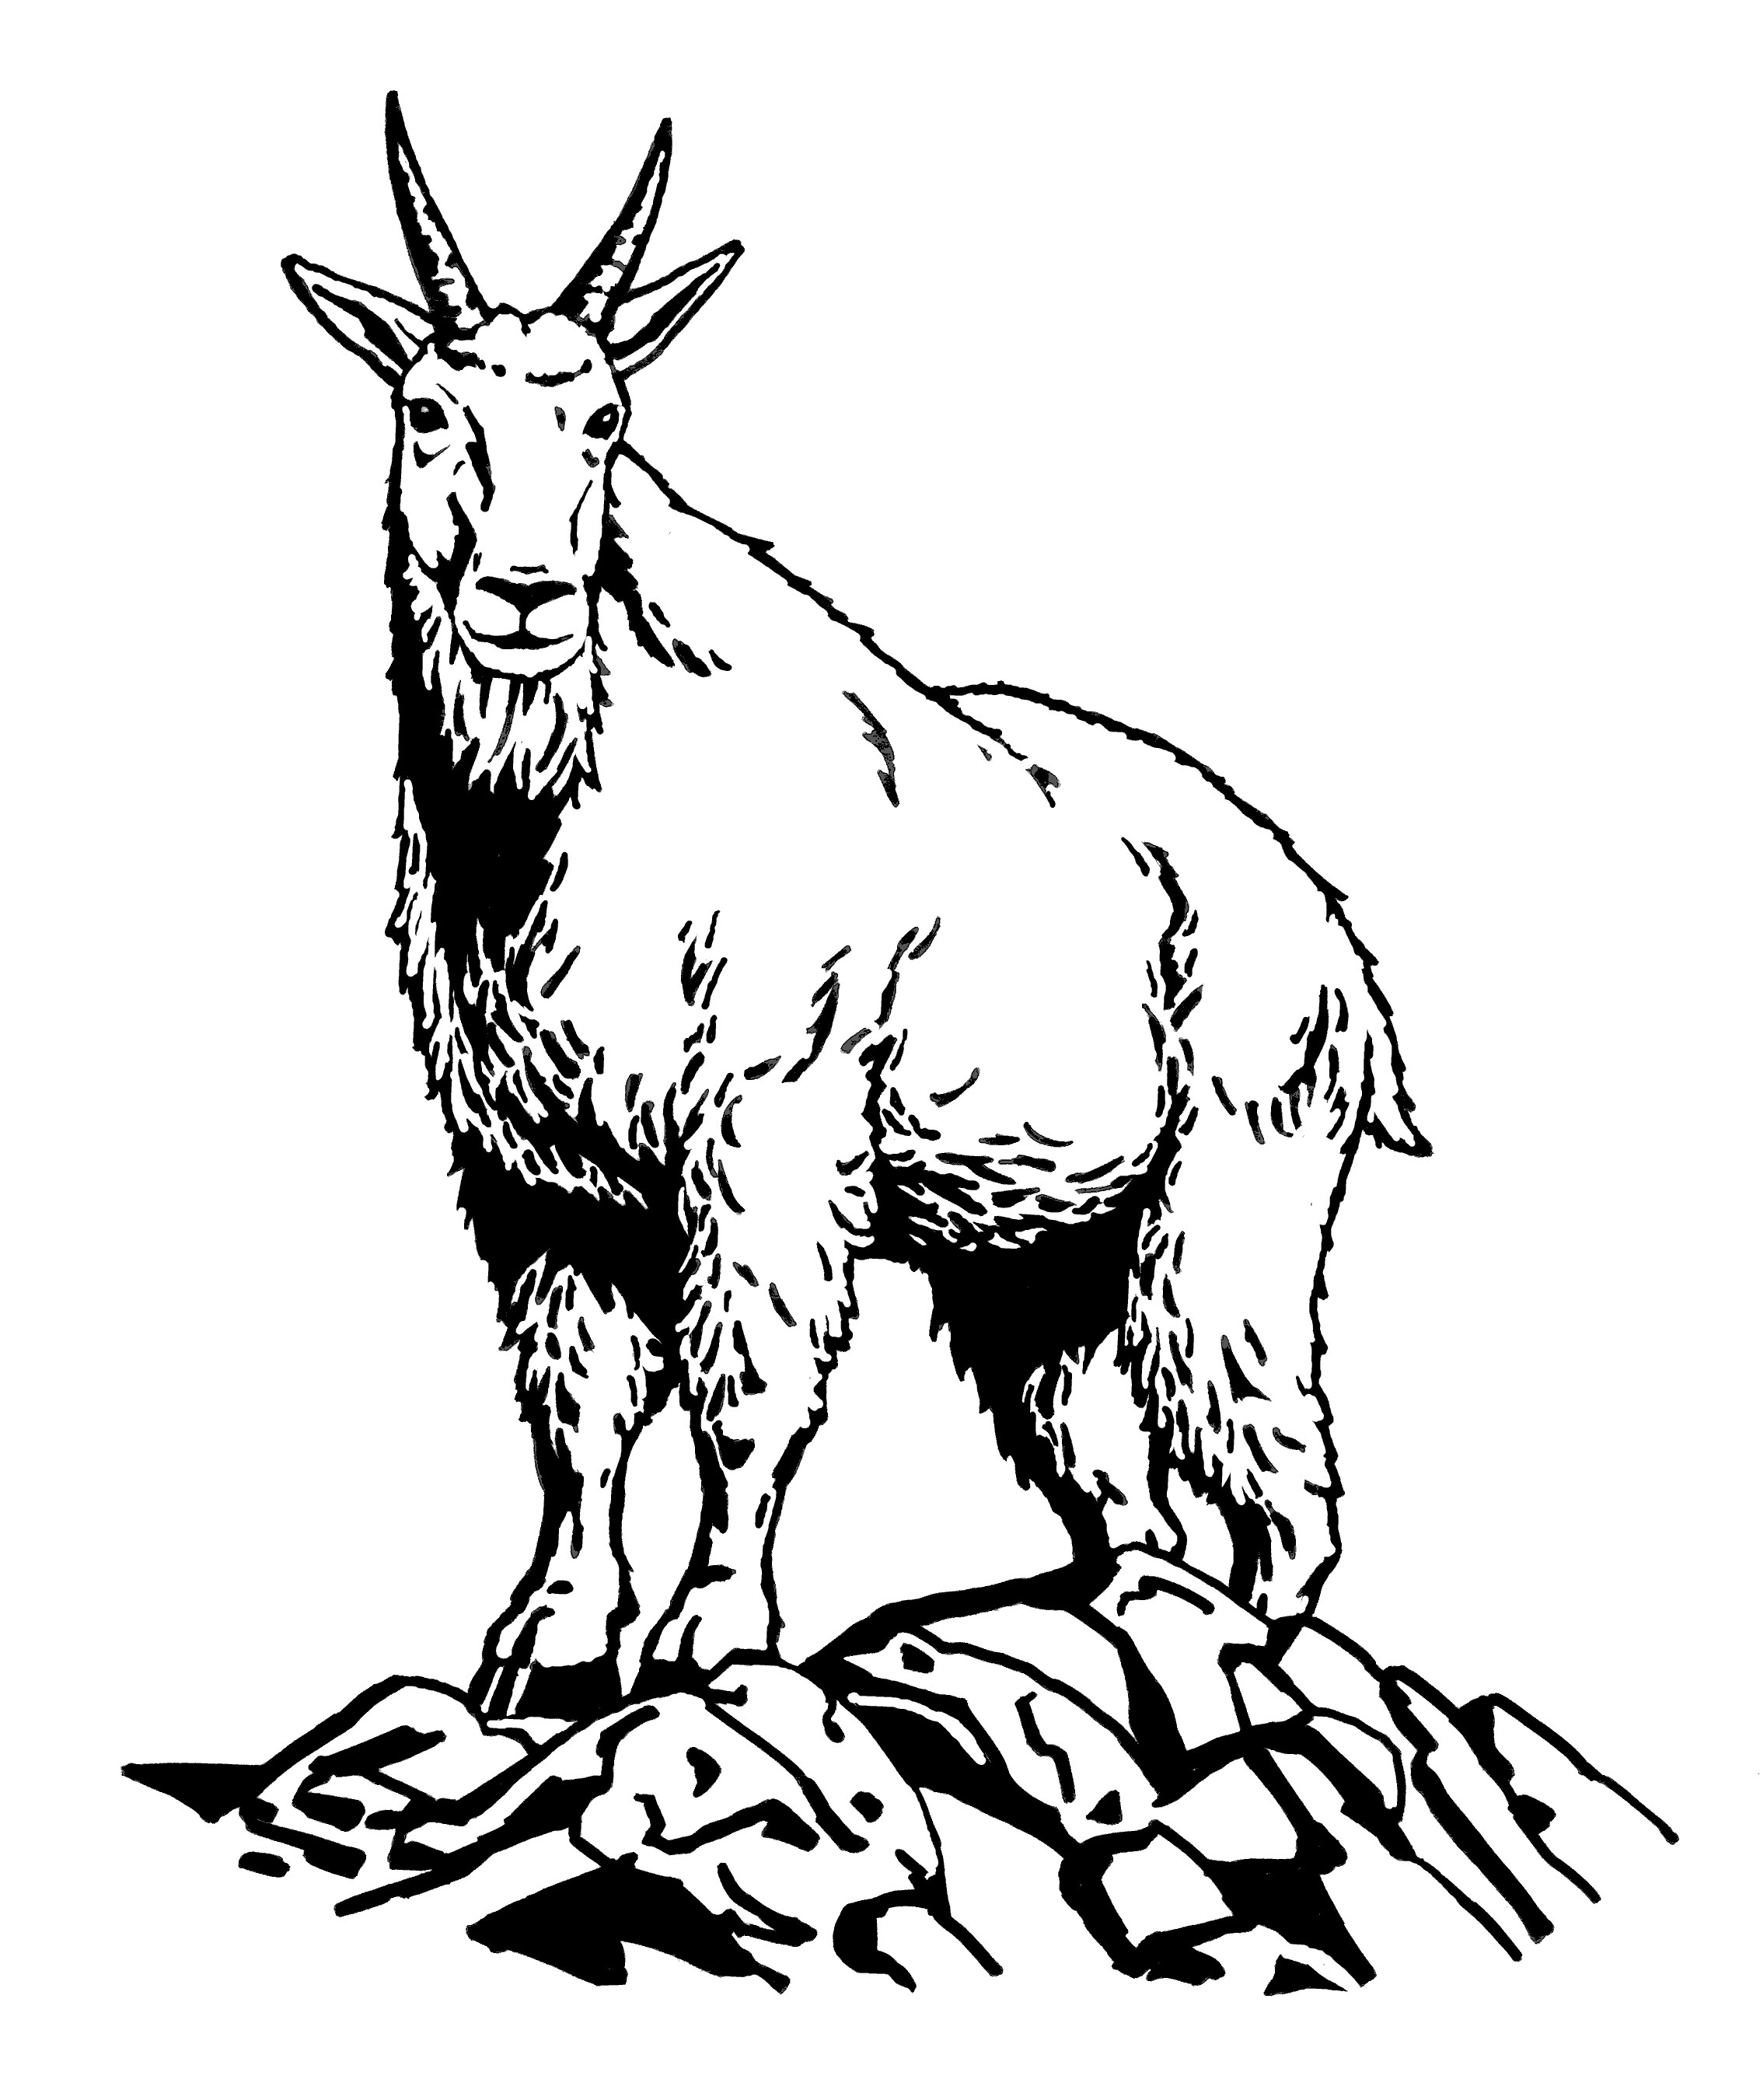 Goat clipart mountain goat. Drawing at getdrawings com